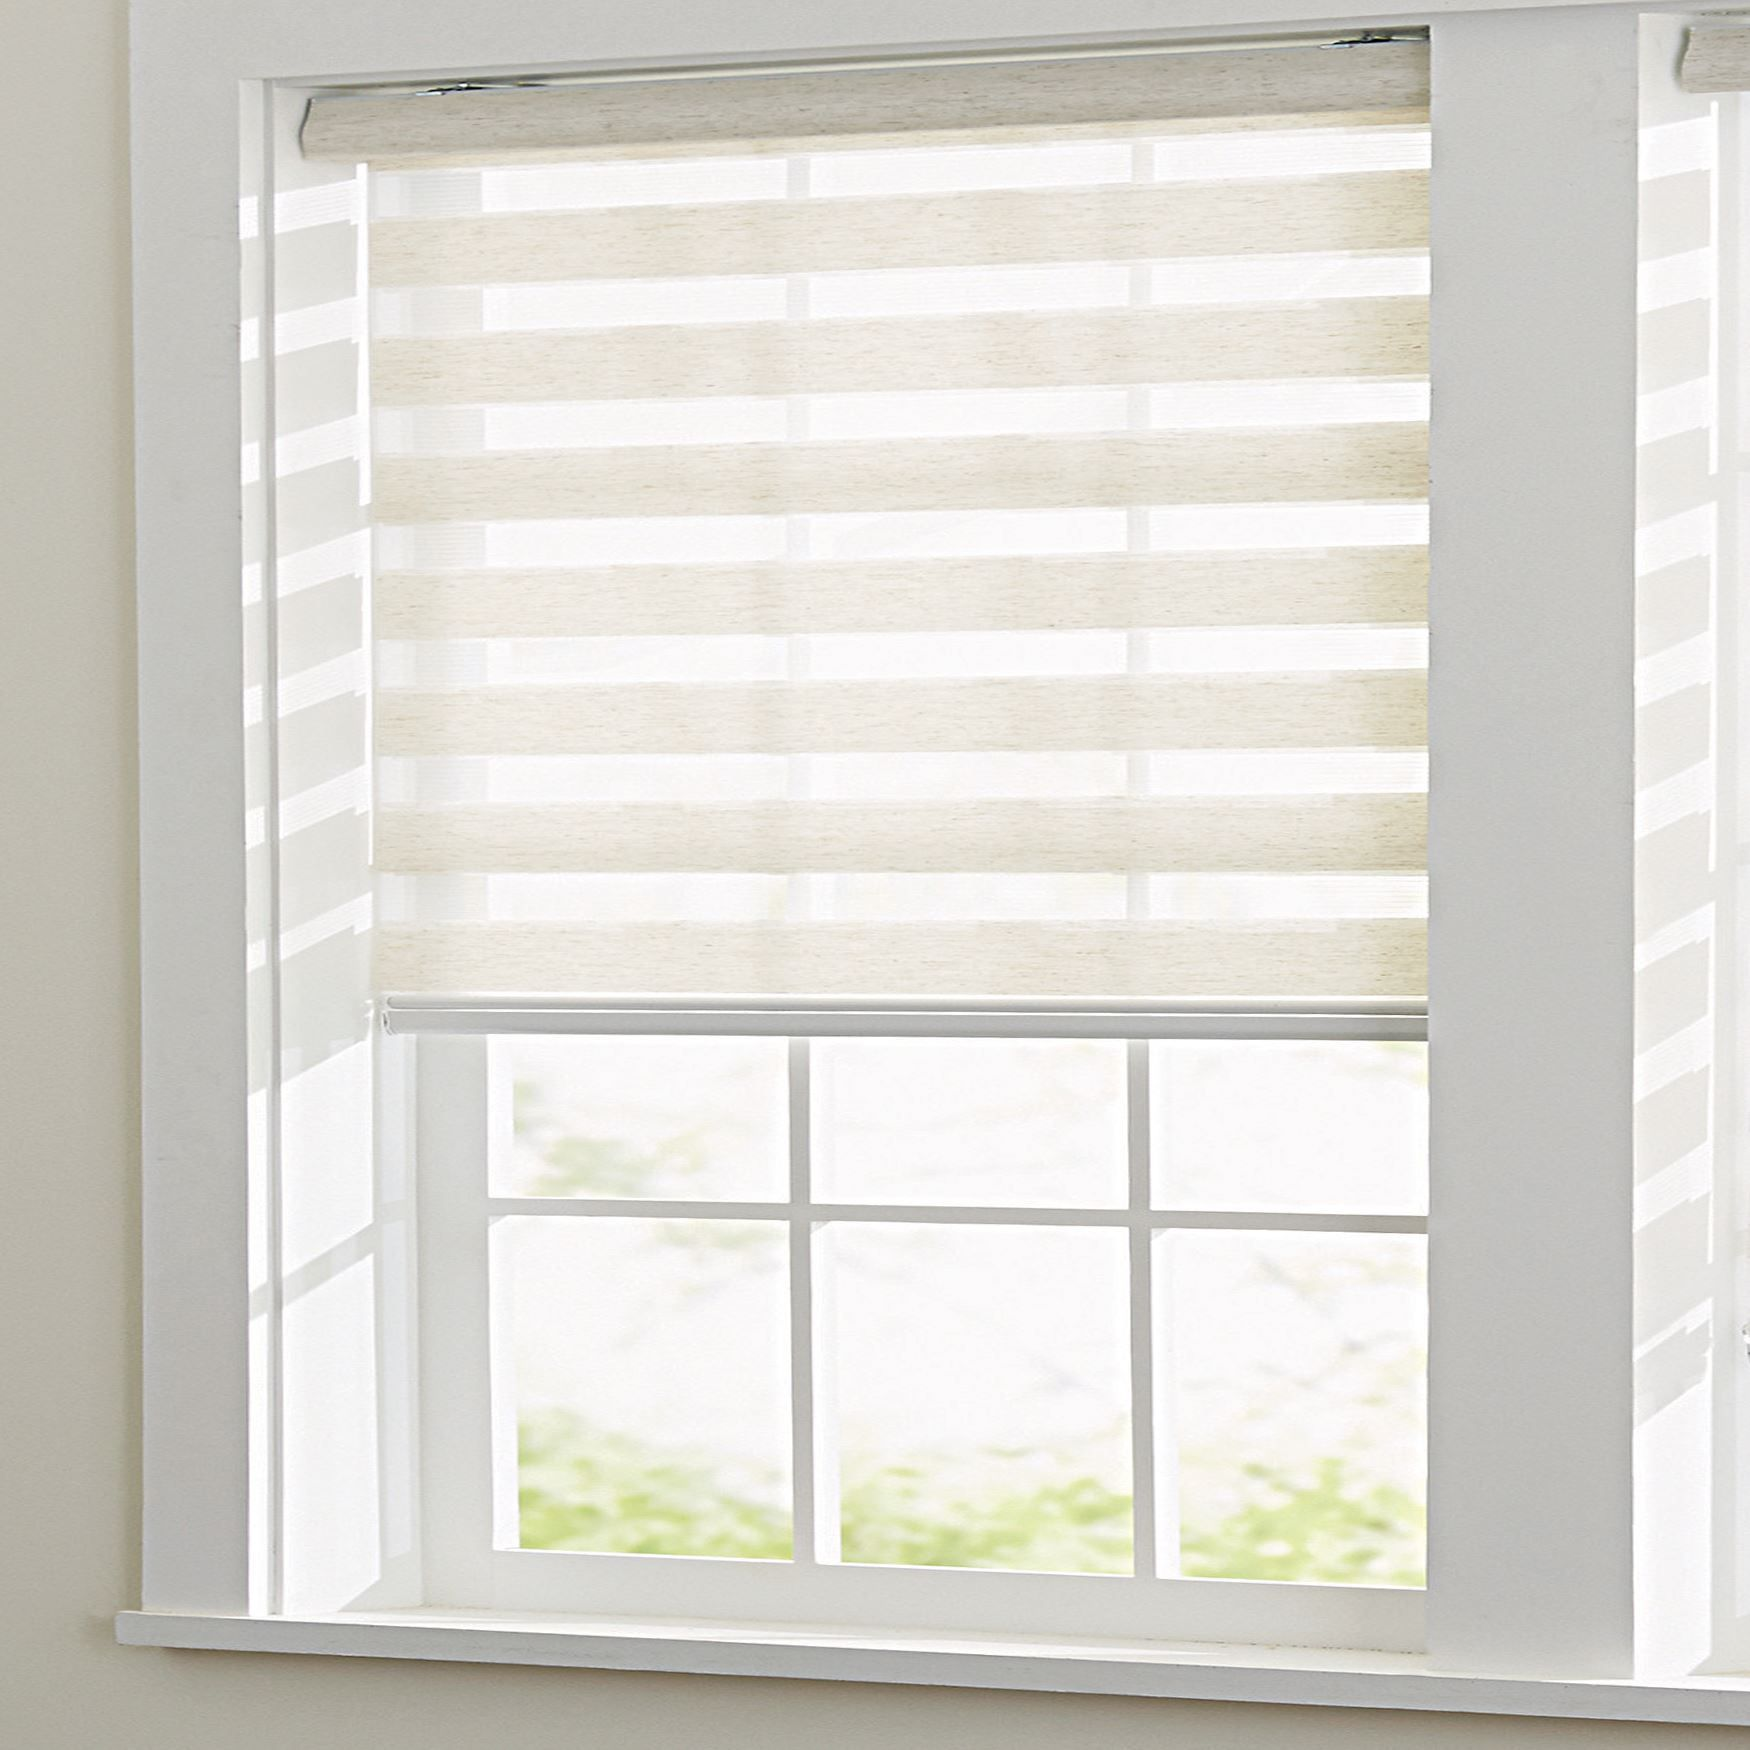 Window Blinds Amp Shades Horizontal Amp Vertical Blinds For